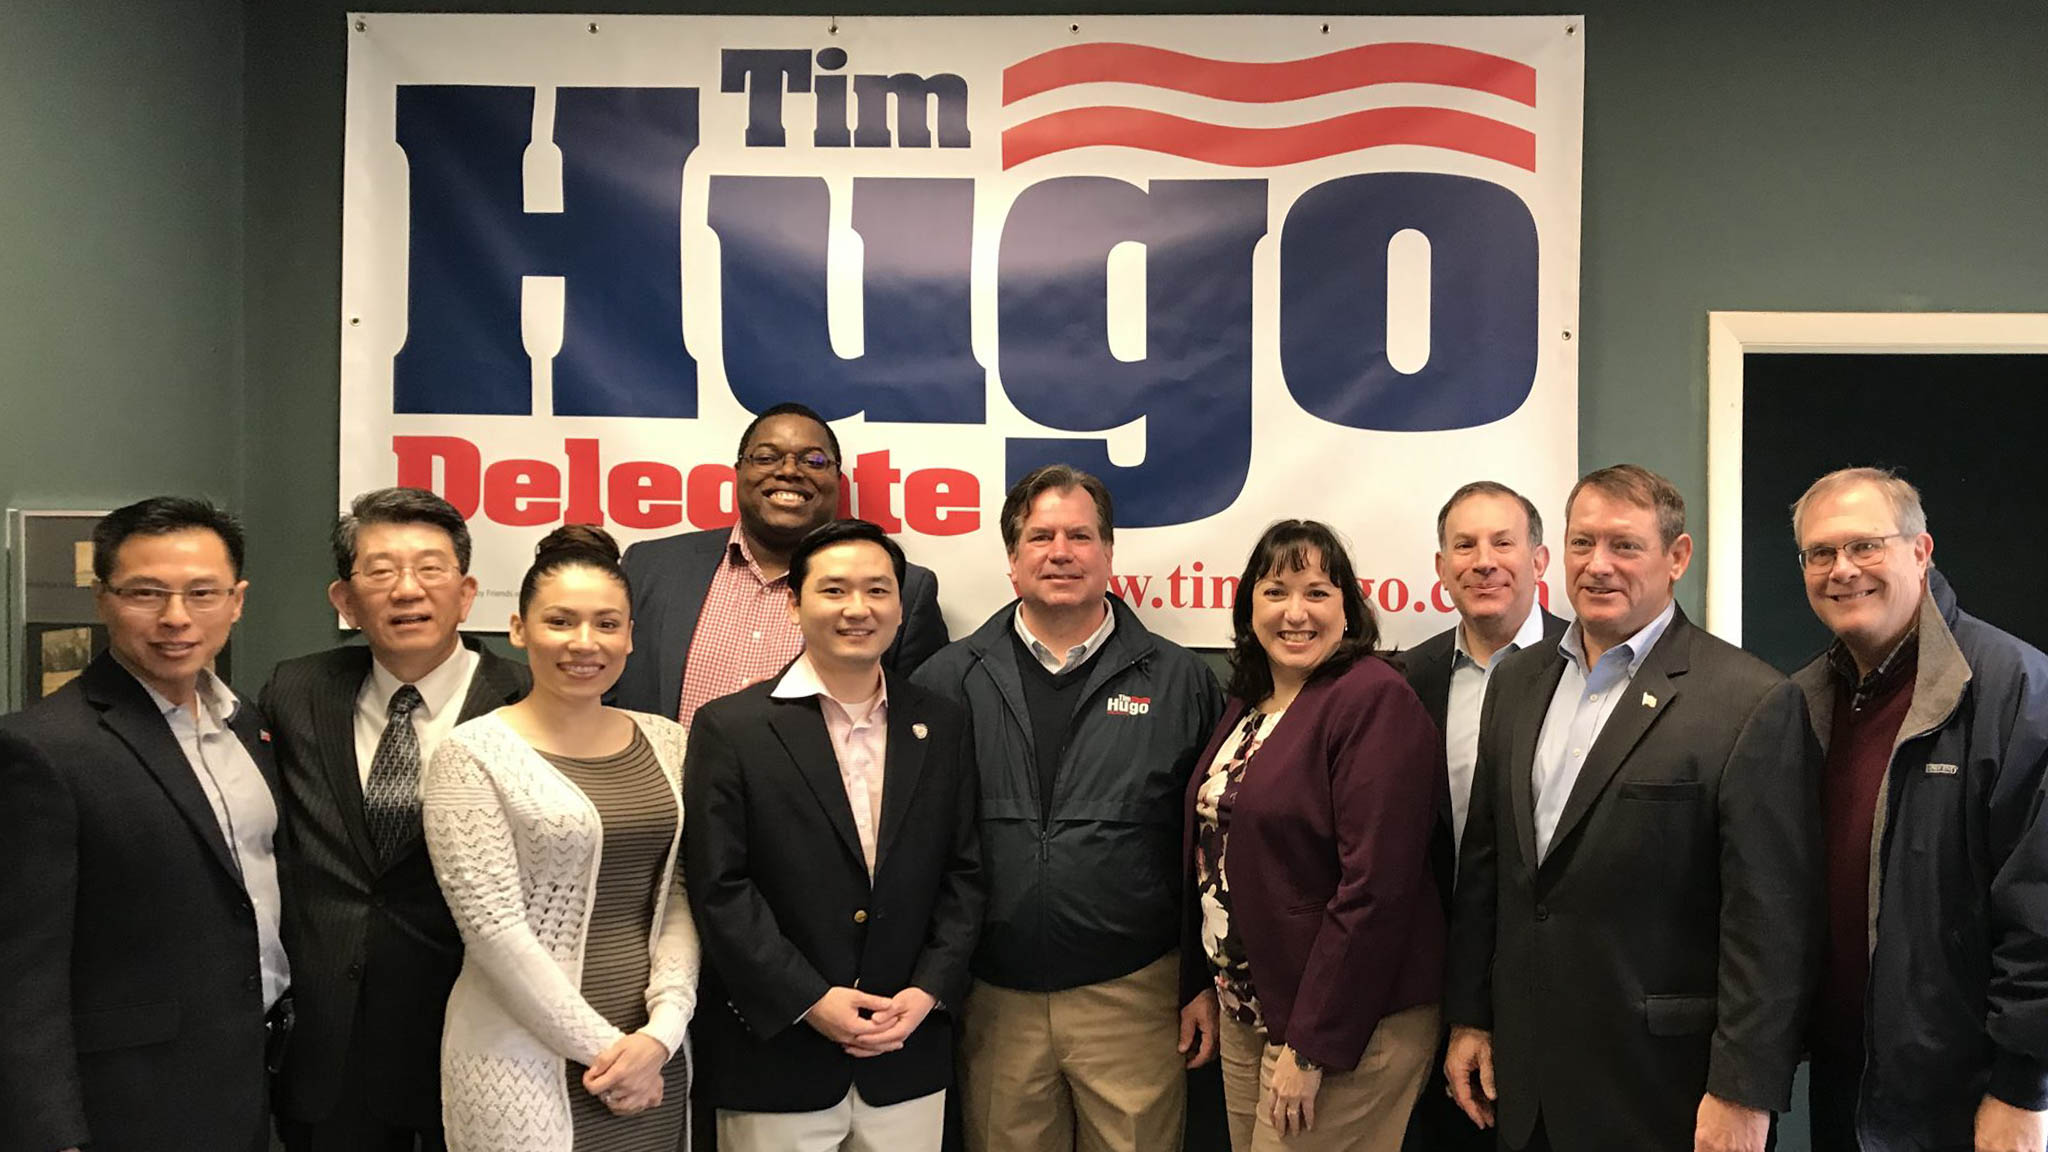 Hugo Kicks Off Re-Election Bid for House of Delegates